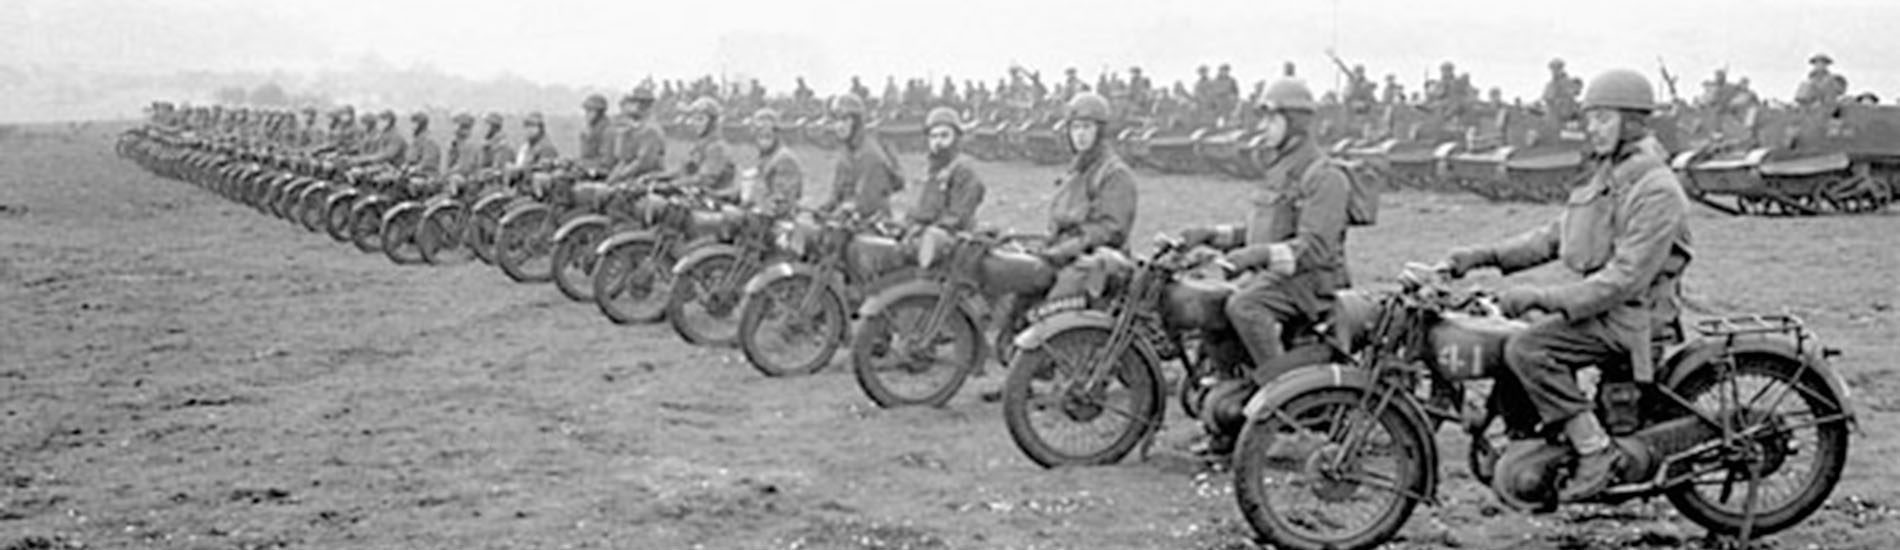 Remembering the Despatch Rider